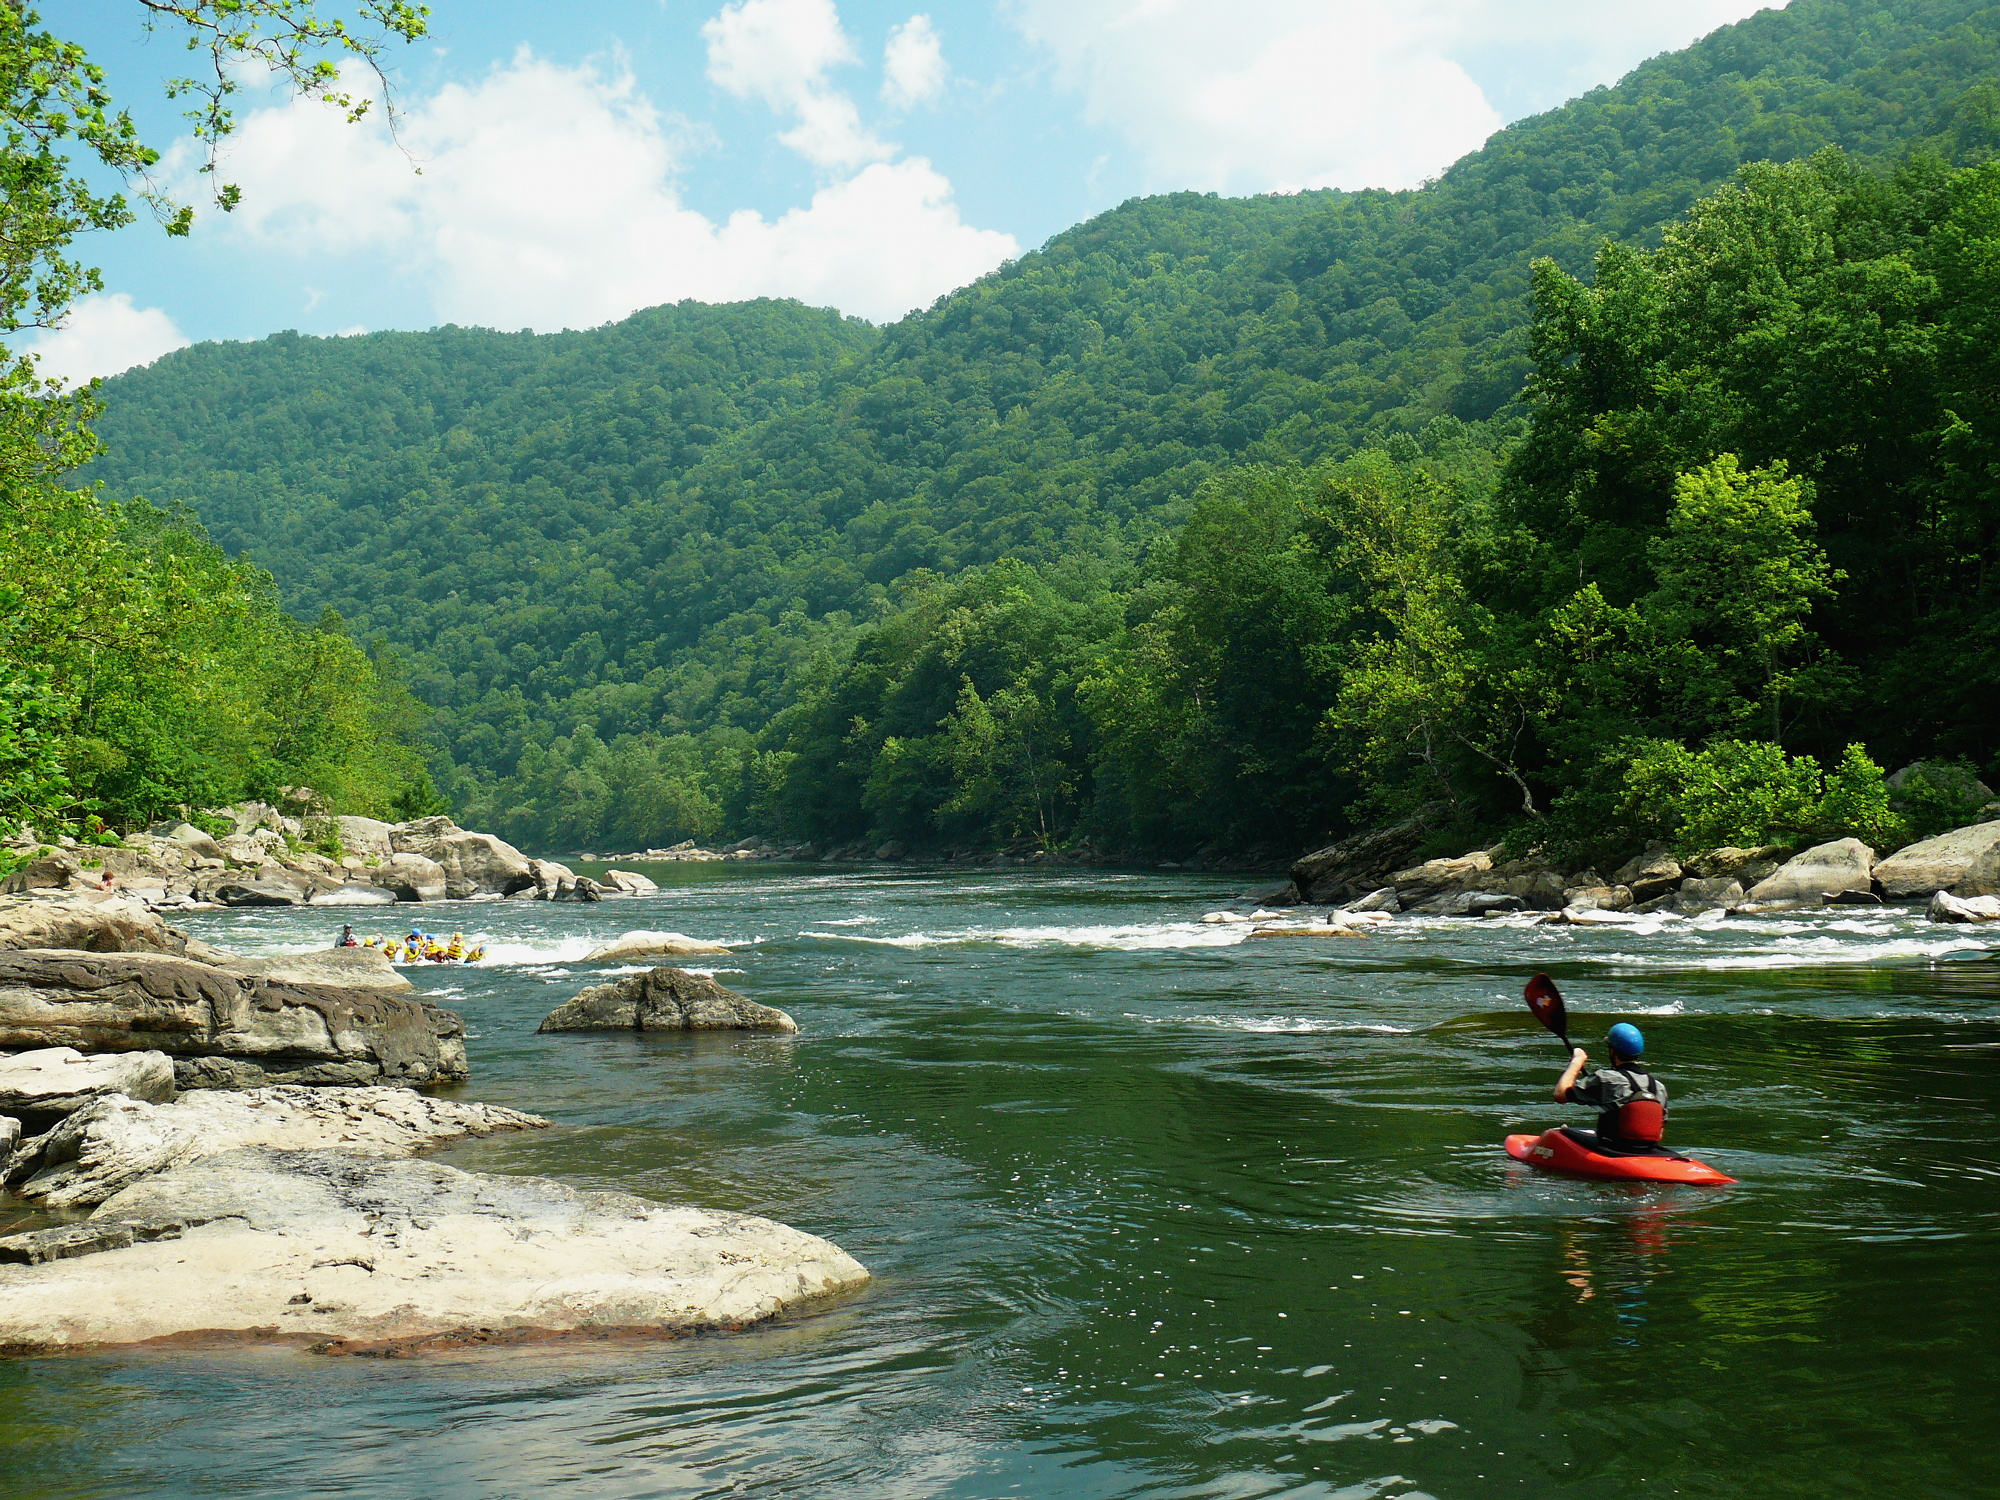 New River Gorge Kayaking File:new River Gorge-27527-3